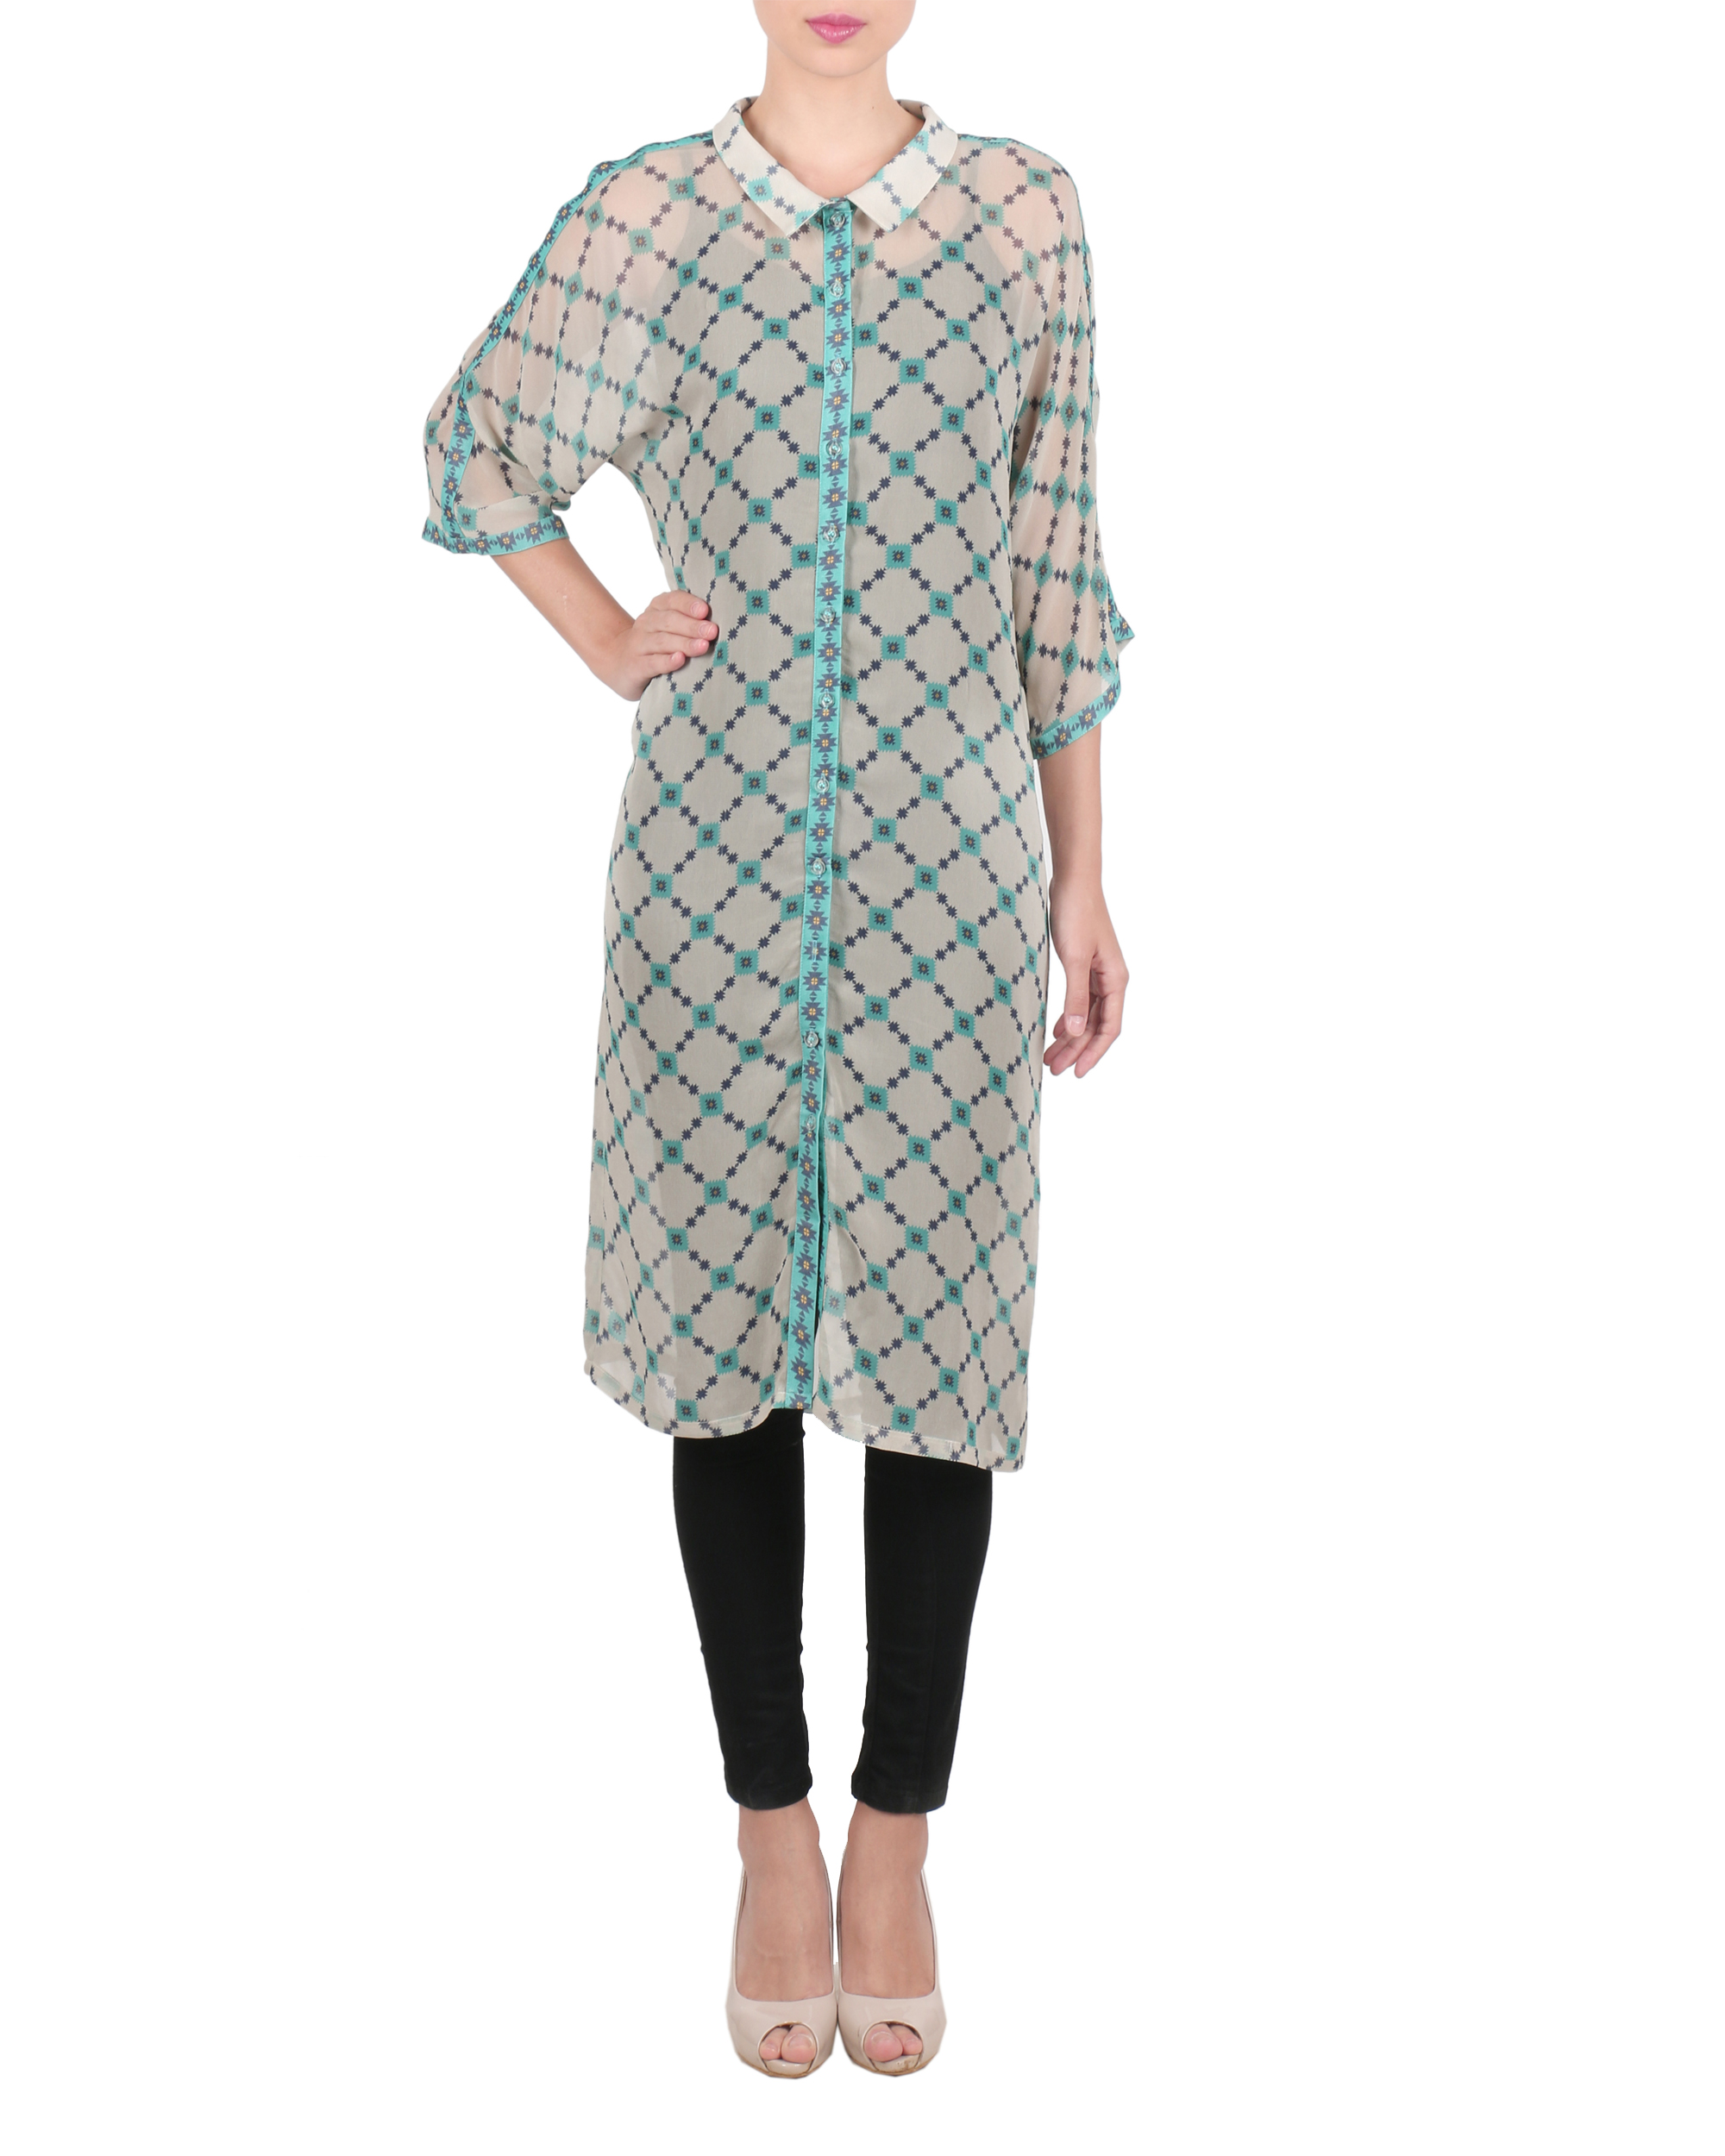 Grey georgette buttoned up tunic